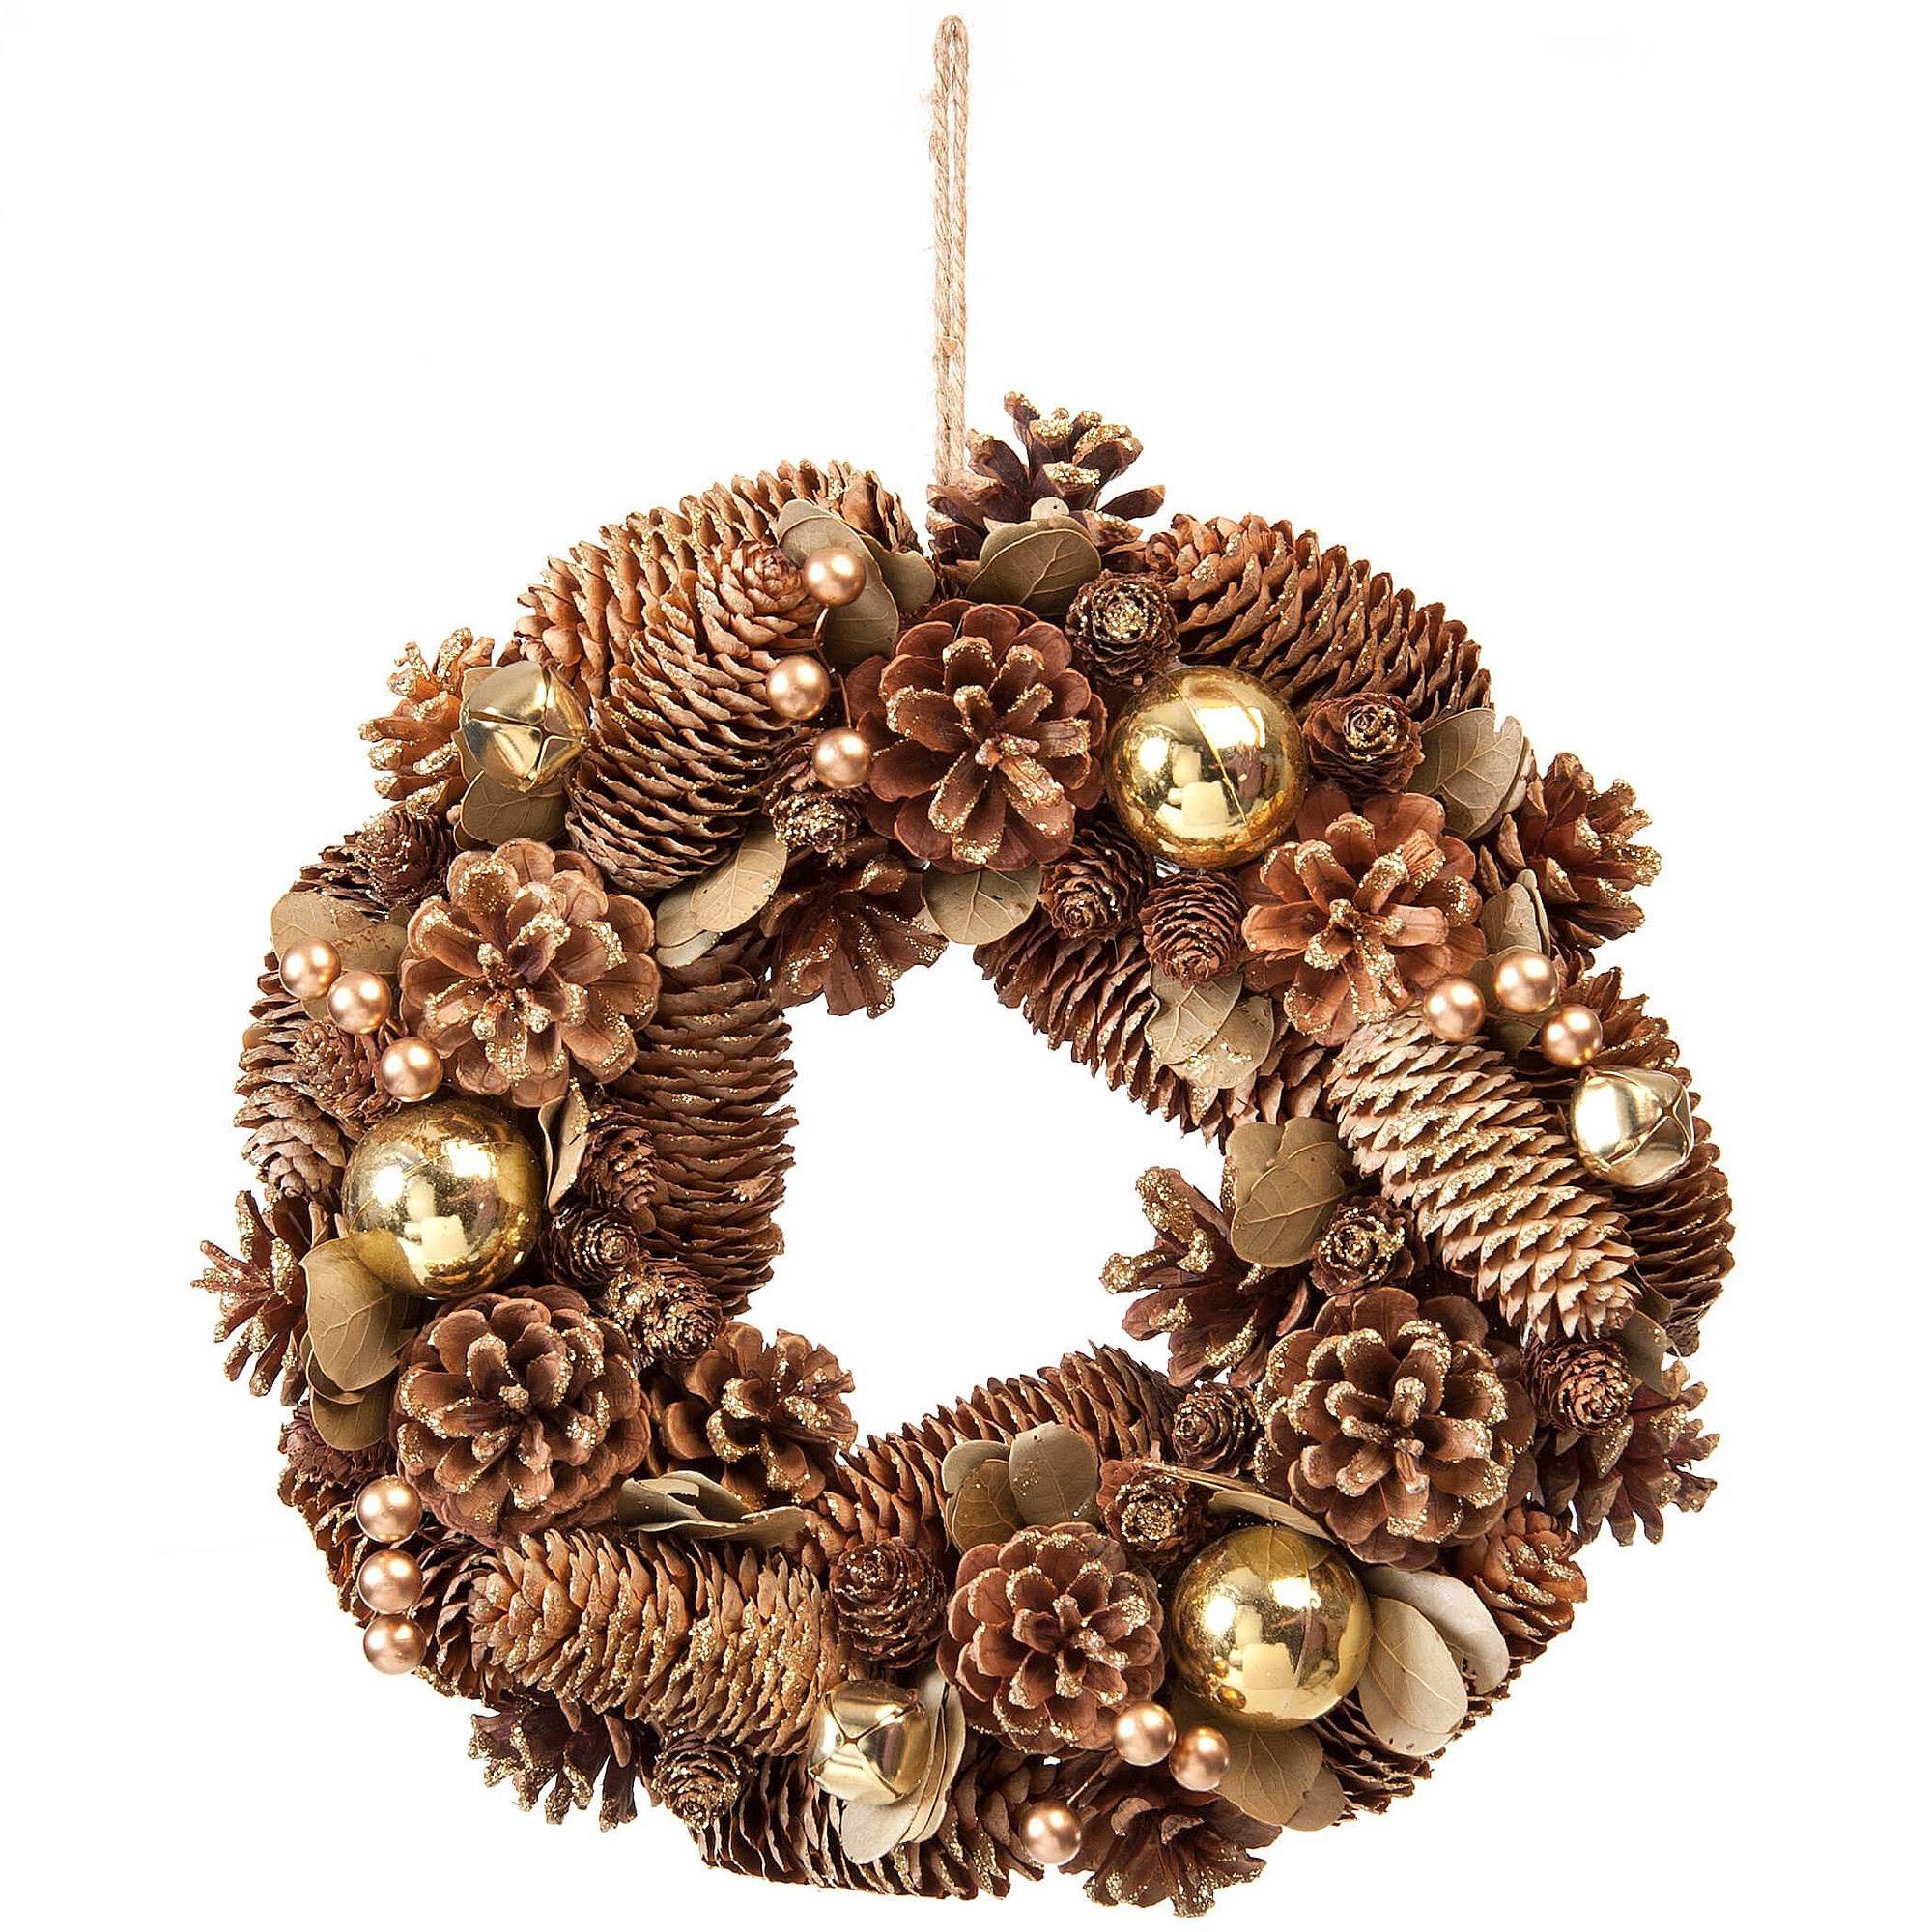 30cm Gold Pinecone Christmas Wreath With Berries